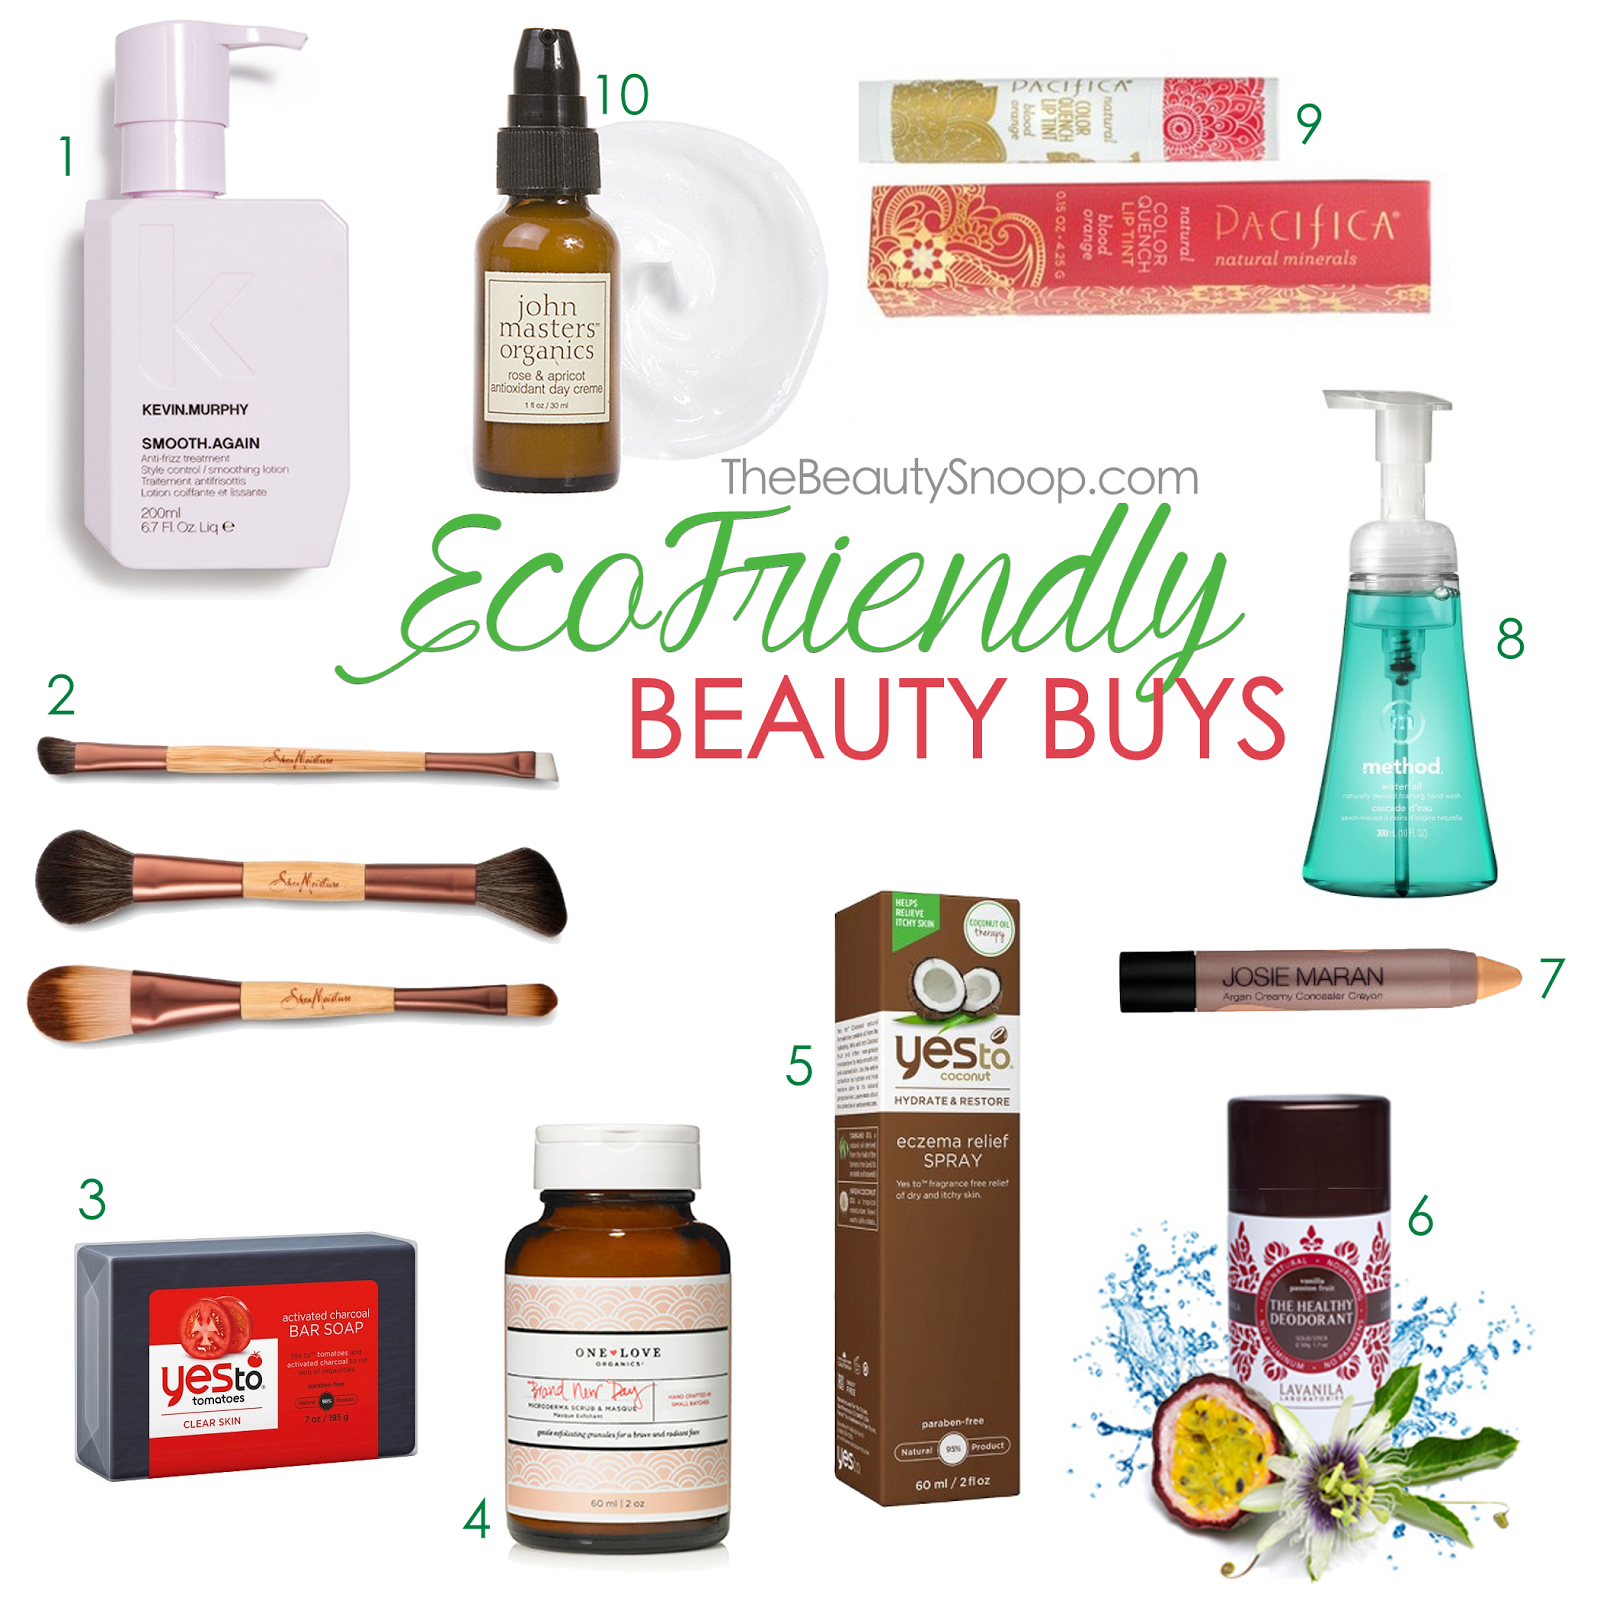 10 ECOFRIENDLY BEAUTY PRODUCTS THAT GIVE AMAZING RESULTS